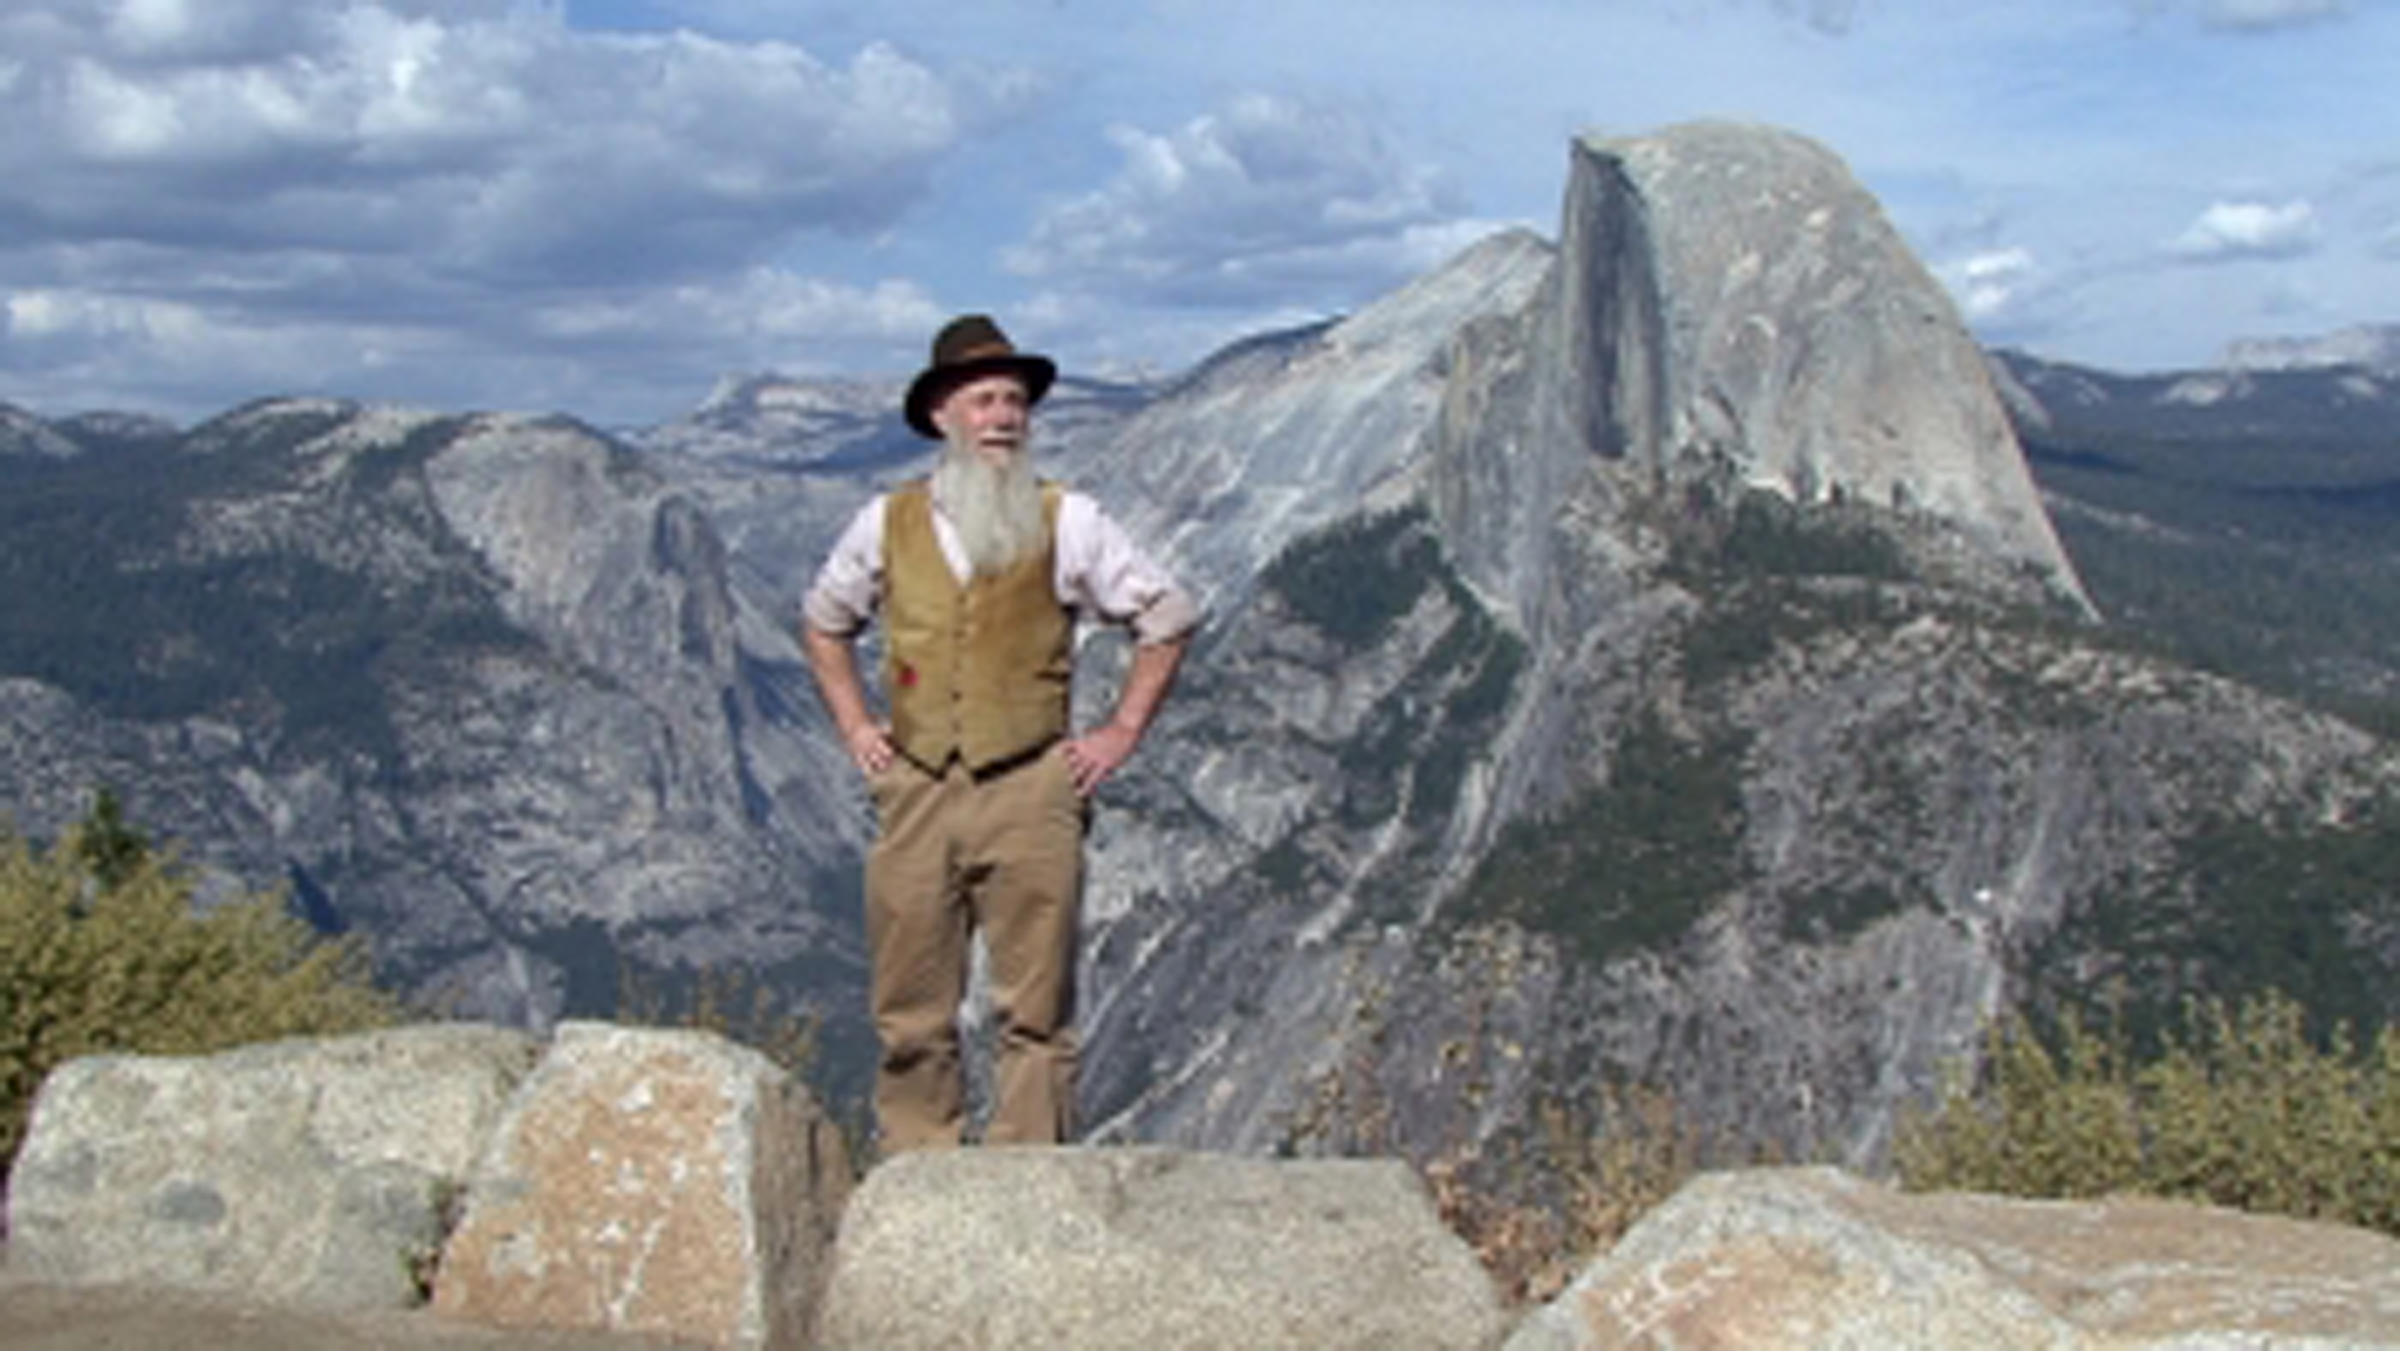 """Lee Stetson, known for his one-man show based on the life of naturalist John Muir, will  perform at the symposium """"Speaking Up and Speaking Out: Working for Social and Environmental Justice through Parks, Recreation, Tourism and Leisure."""""""